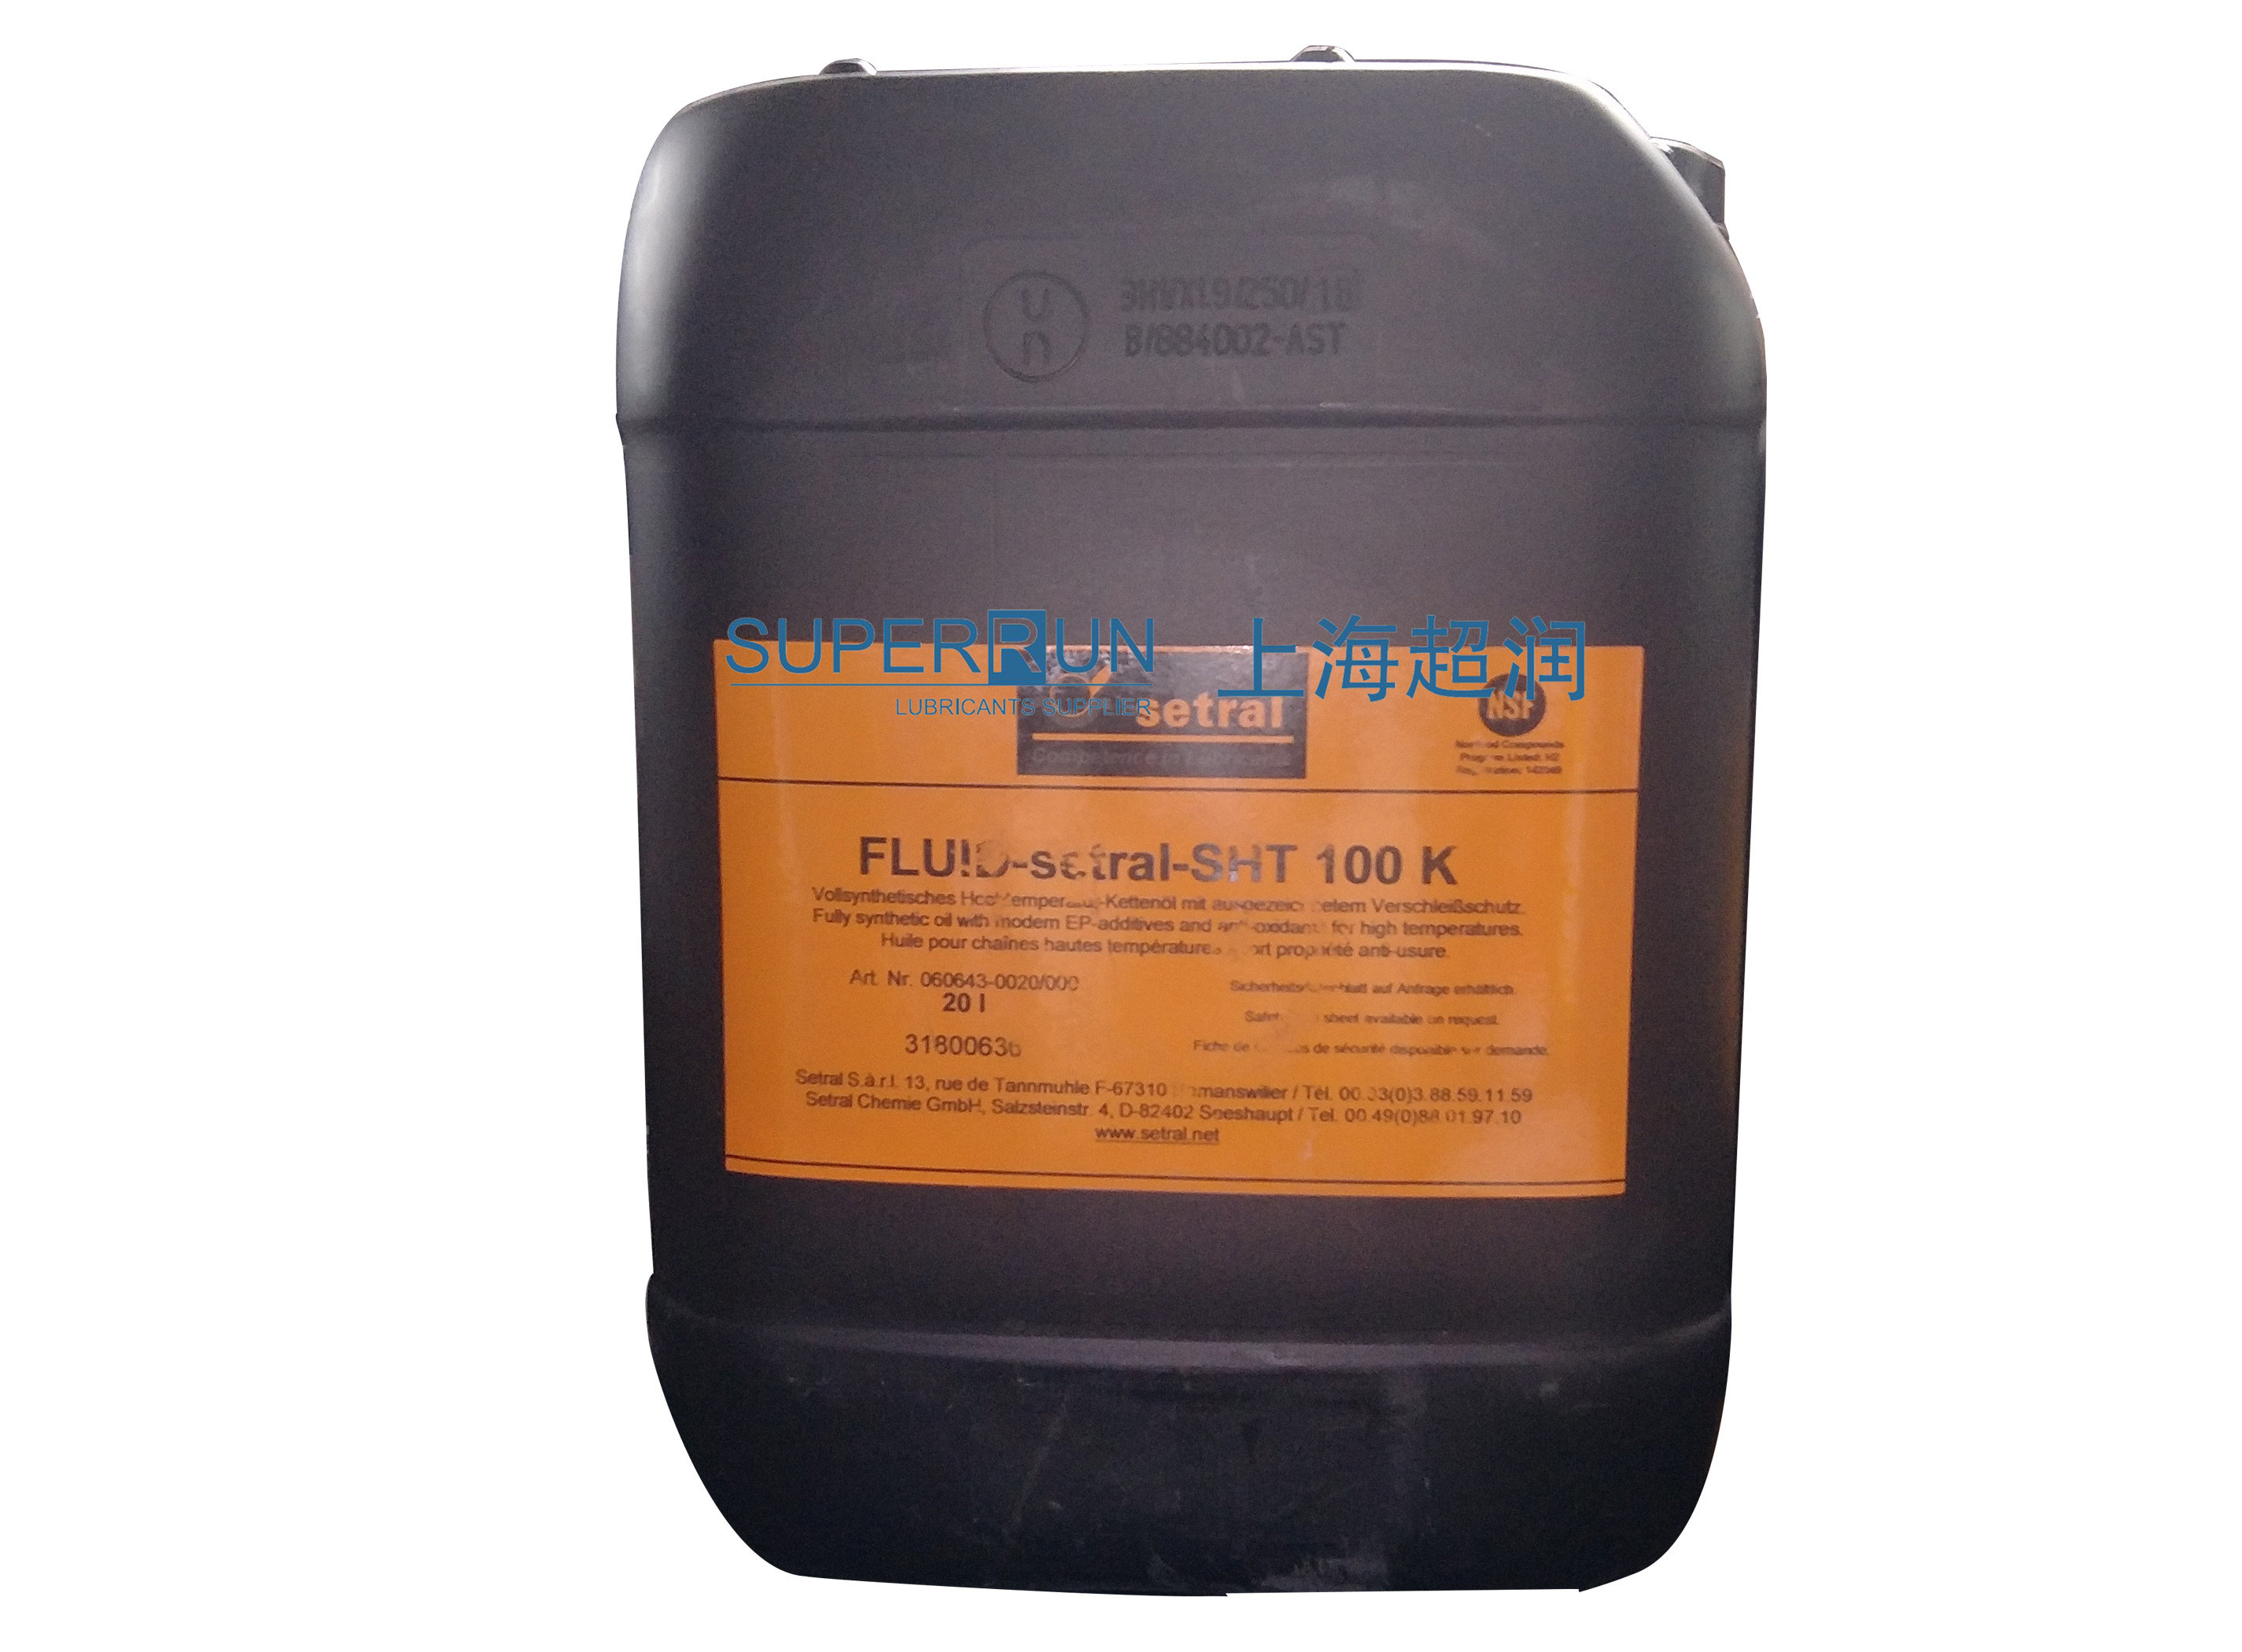 SETRAL FLUID-SETRAL-SHT 100 K